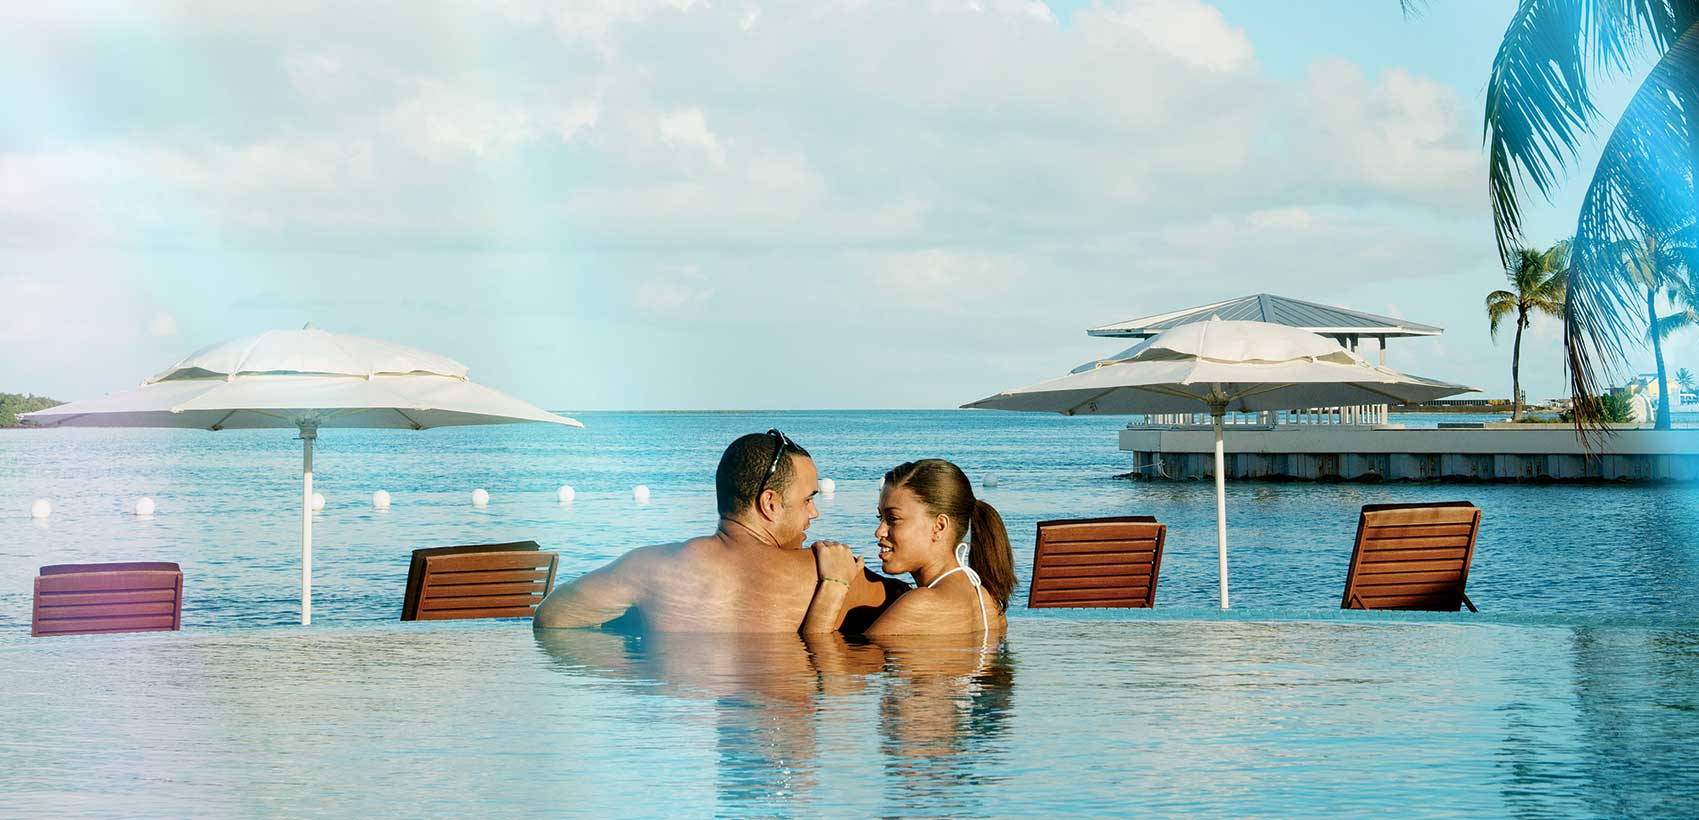 Enjoy Your Luxury Vacation with Transat 2